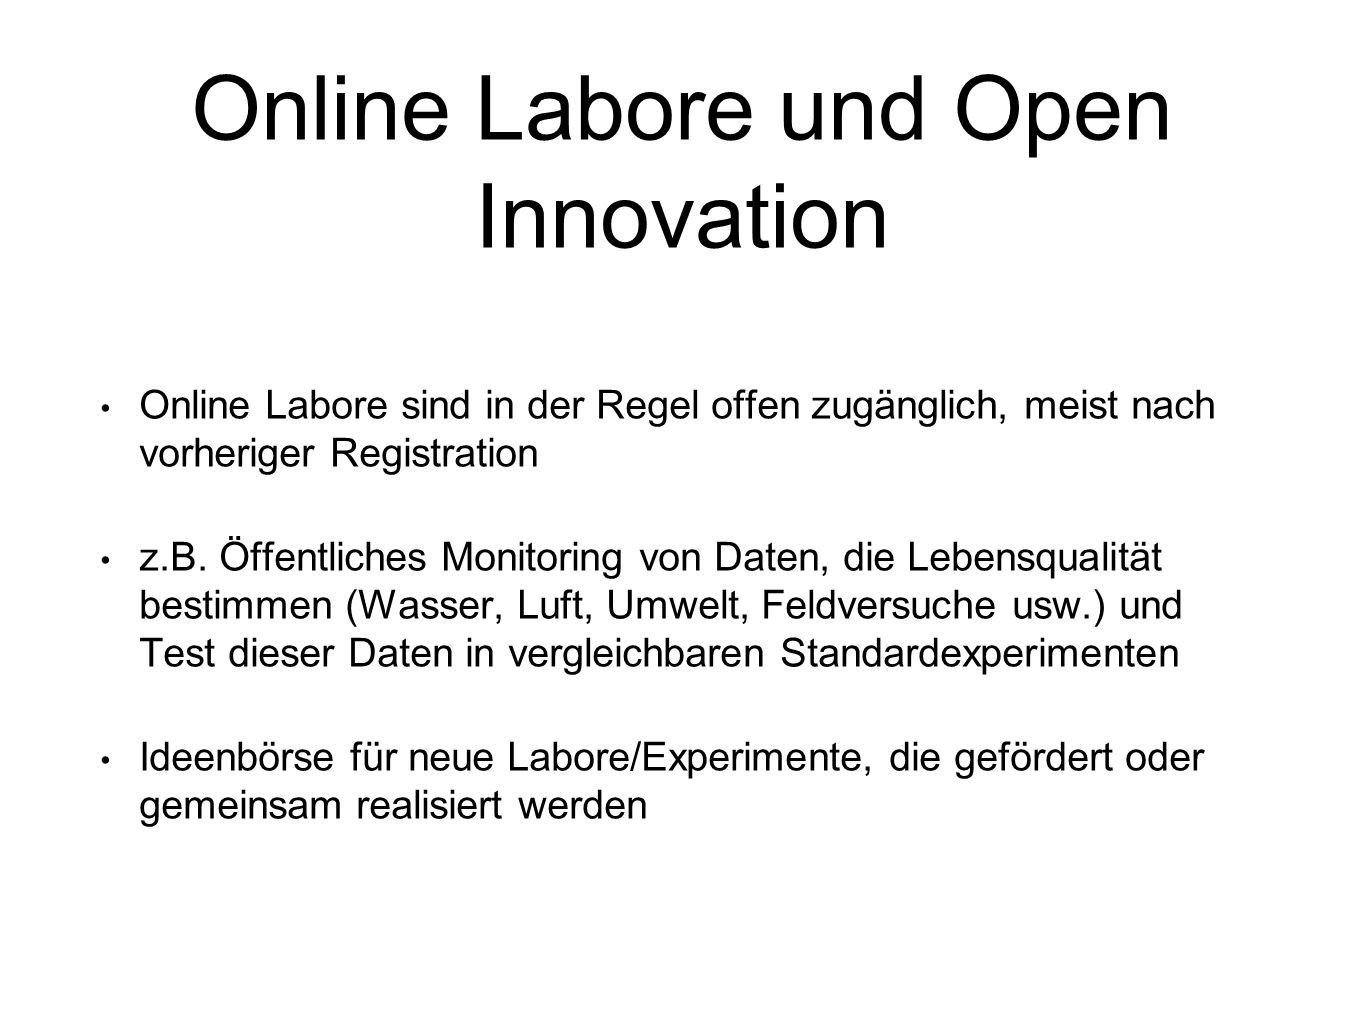 Online Labore und Open Innovation